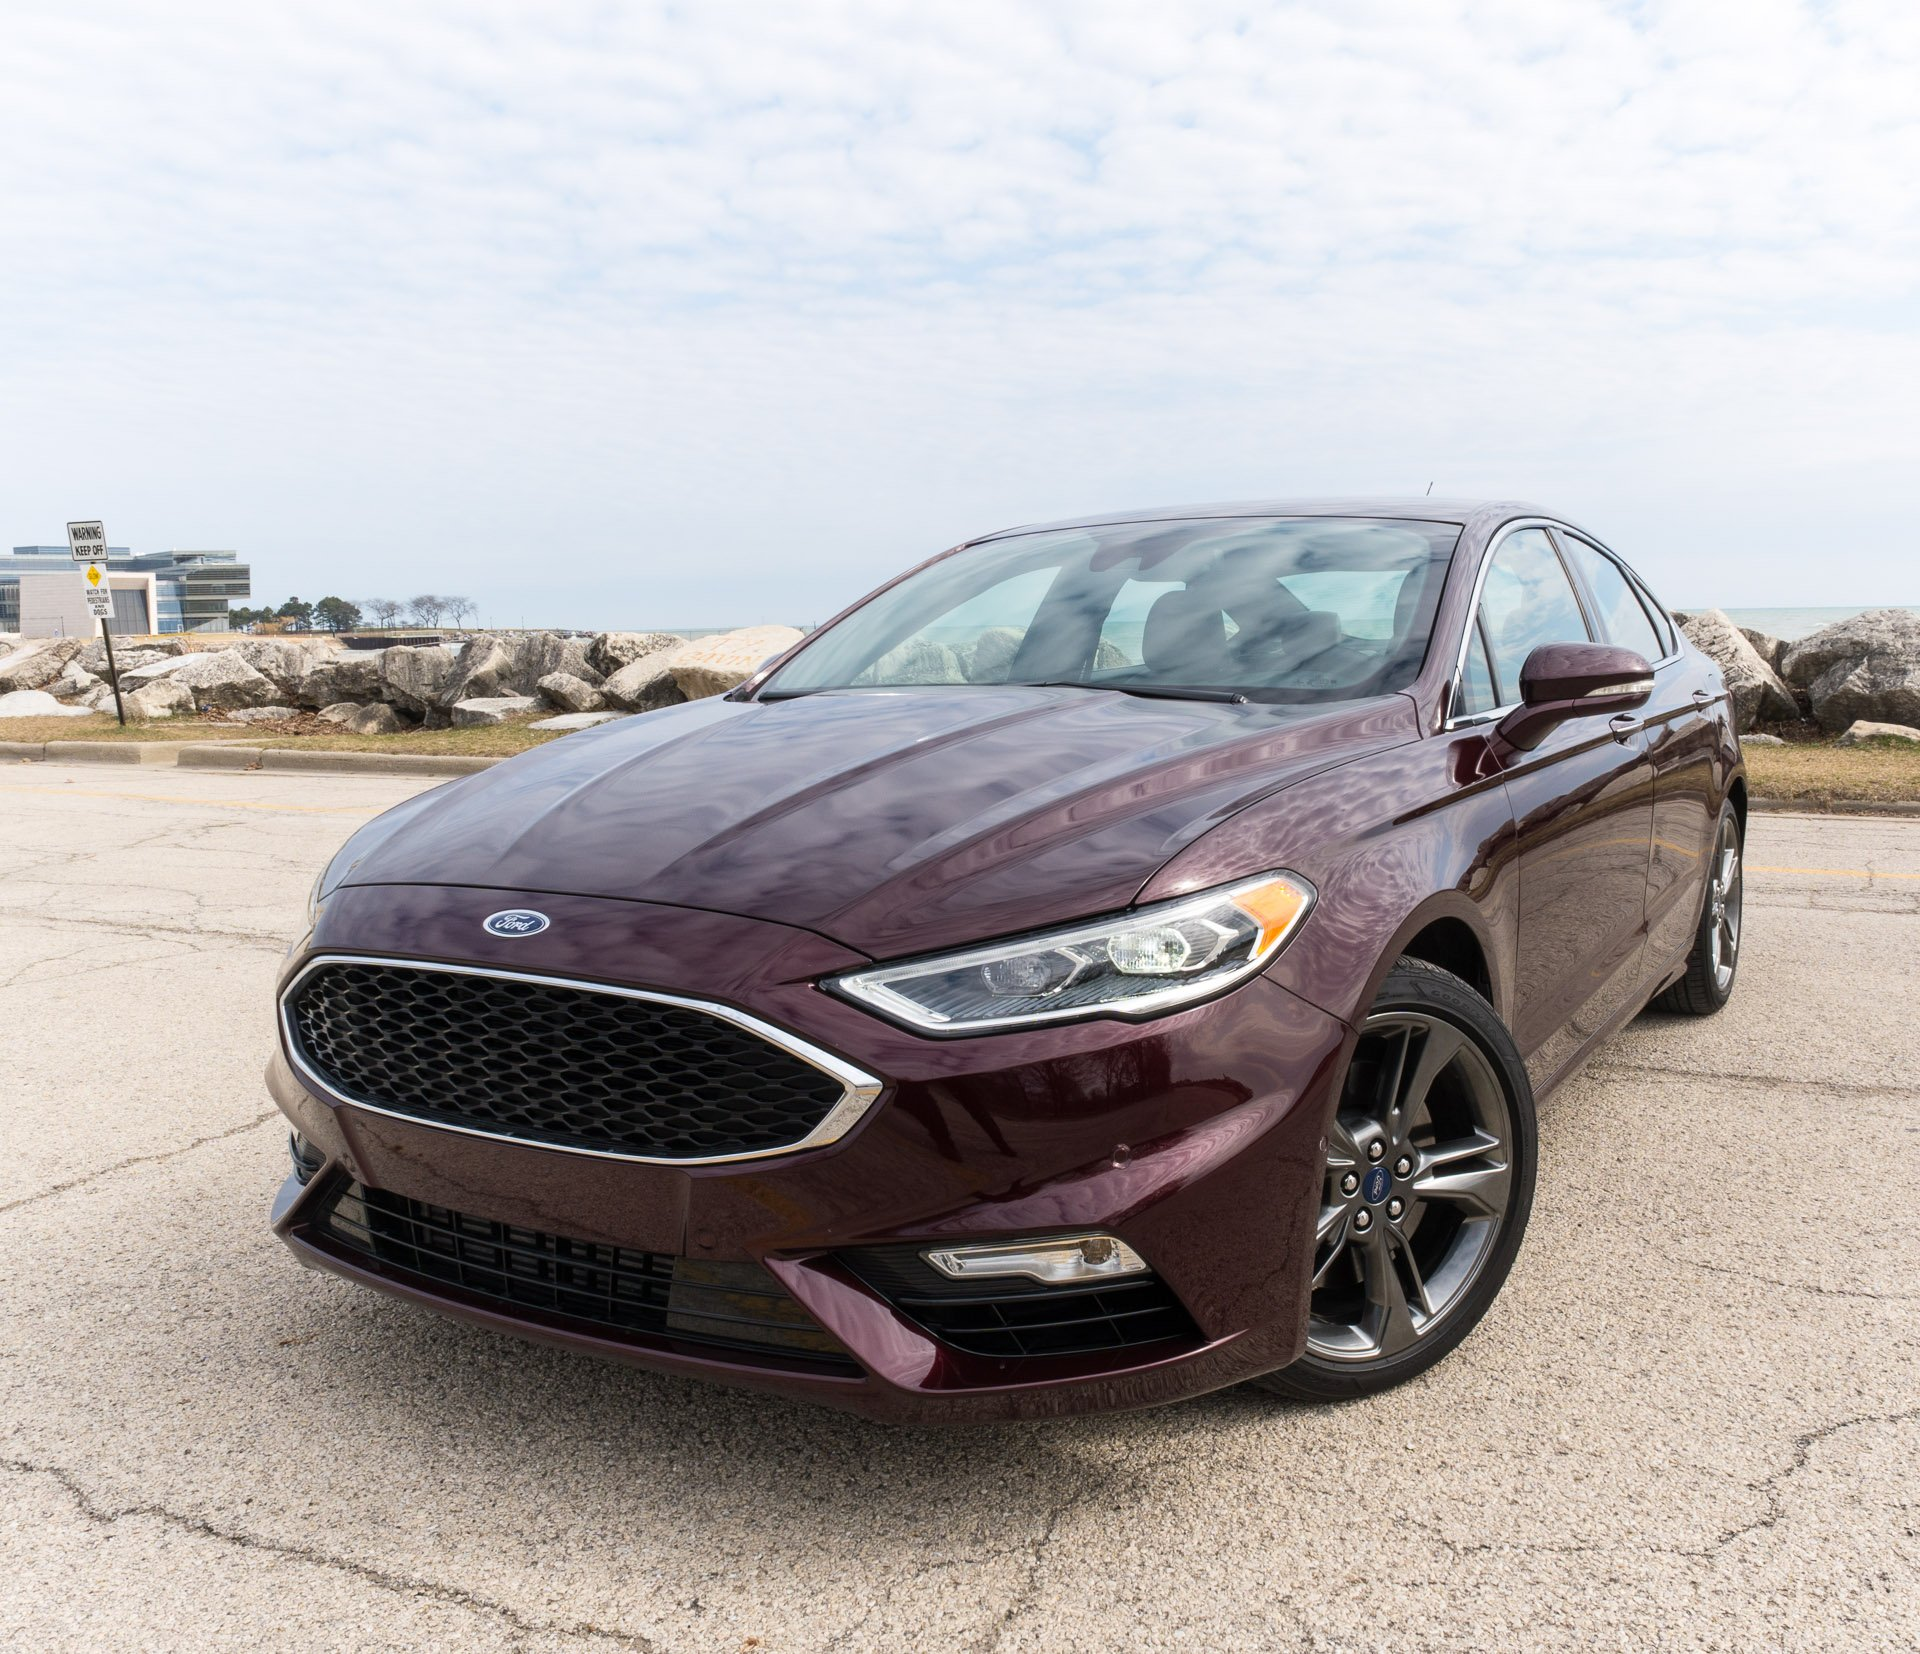 2017 Ford Fusion Sport Review: Daily Driver With A Dash Of